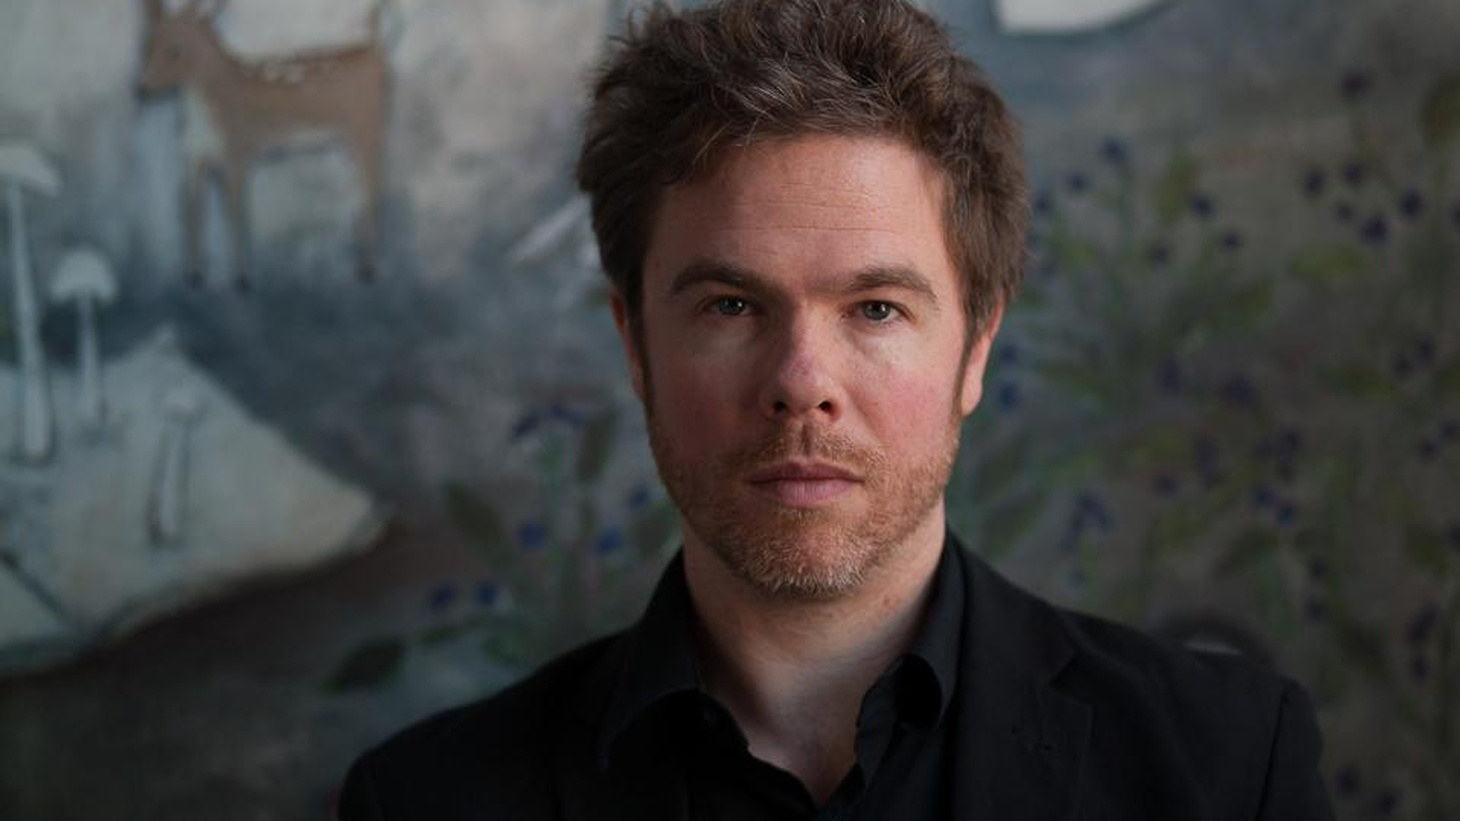 When Josh Ritter's marriage ended, he scrawled his thoughts and emotions down and turned them into songs. A raw and honest recording followed.